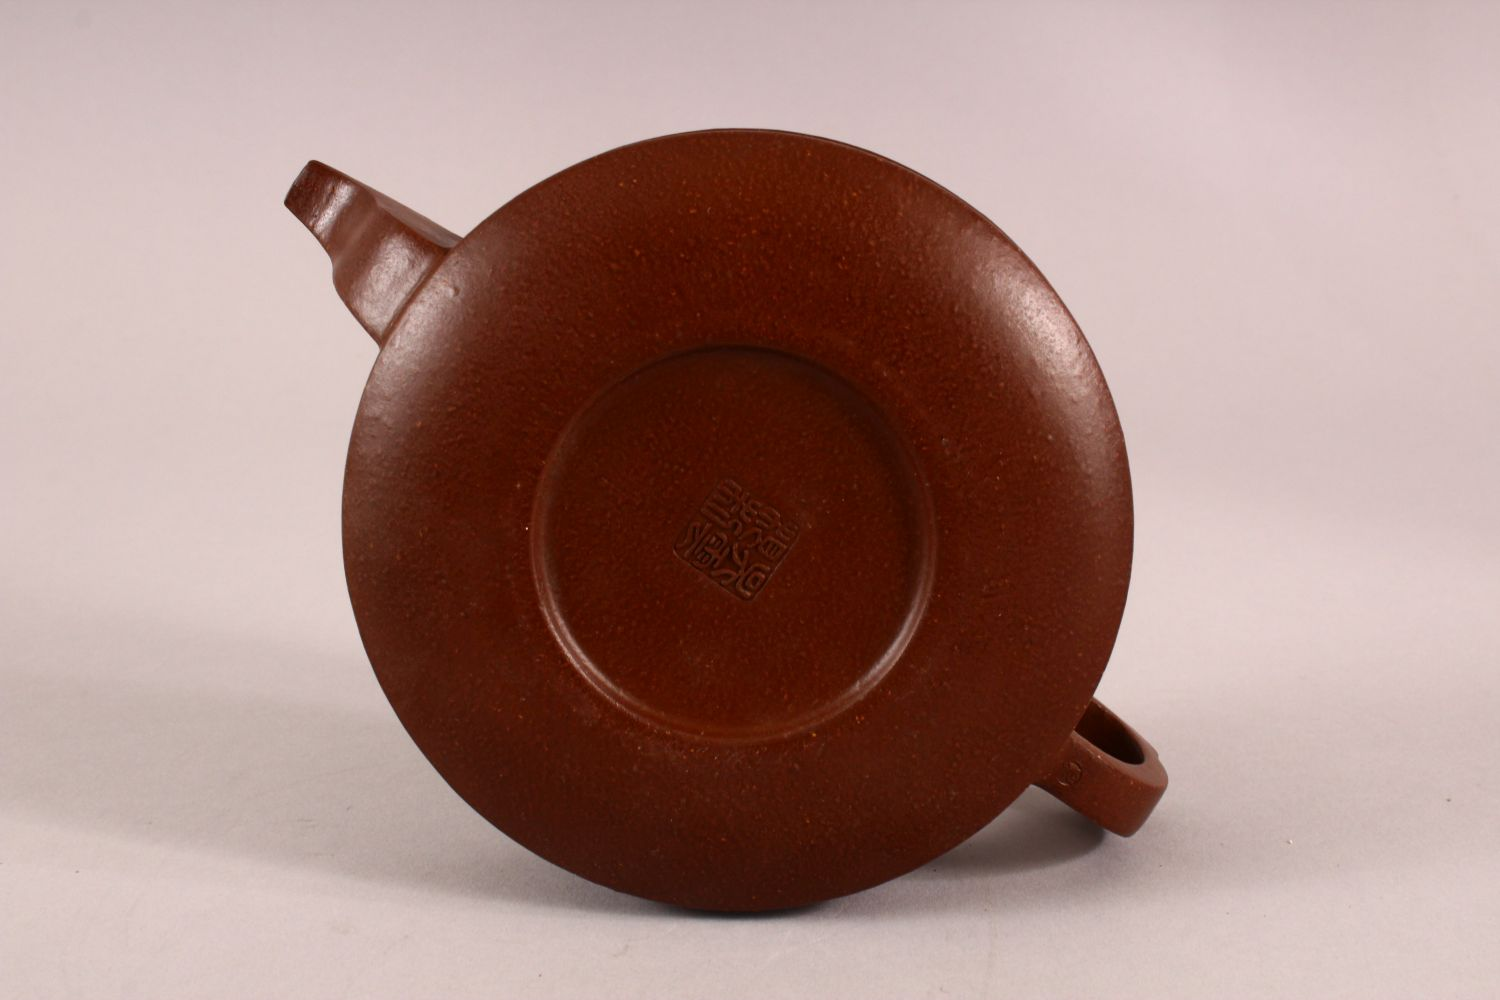 A CHINESE YIXING CLAY TEAPOT, with moulded beast like figures, the underside of the pot and lid with - Image 7 of 8